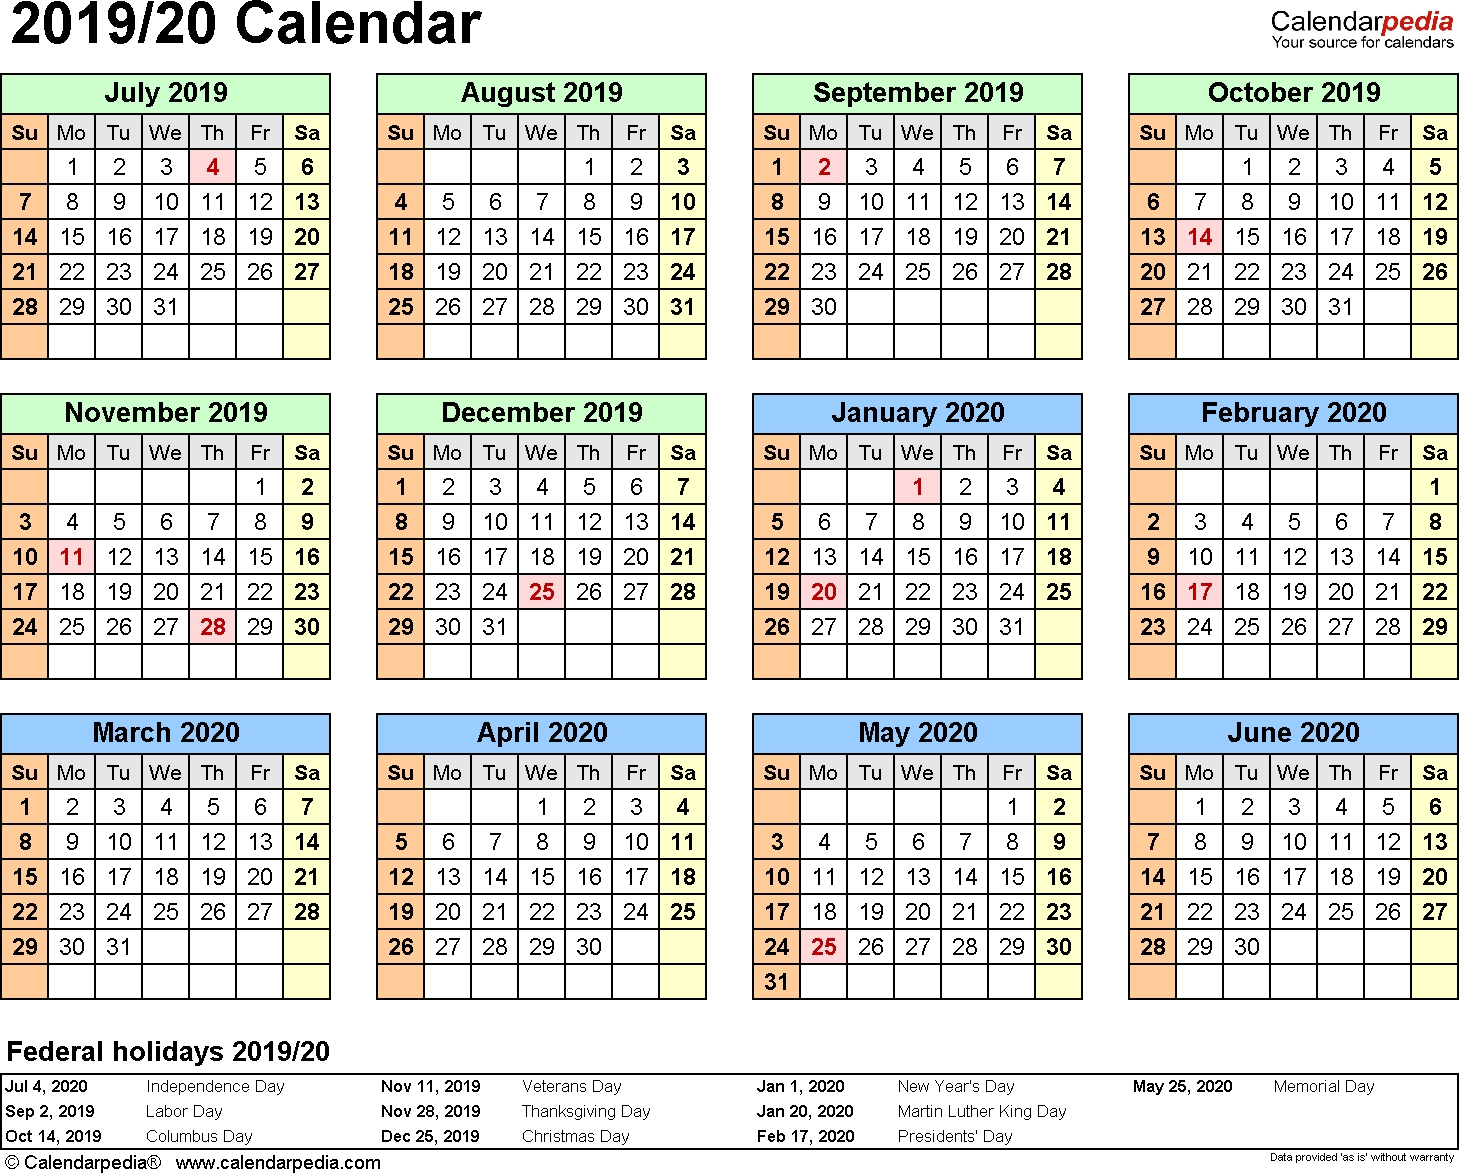 Split Year Calendar 2019/20 (July To June) - Pdf Templates intended for July 2019 June 2020 Calendar